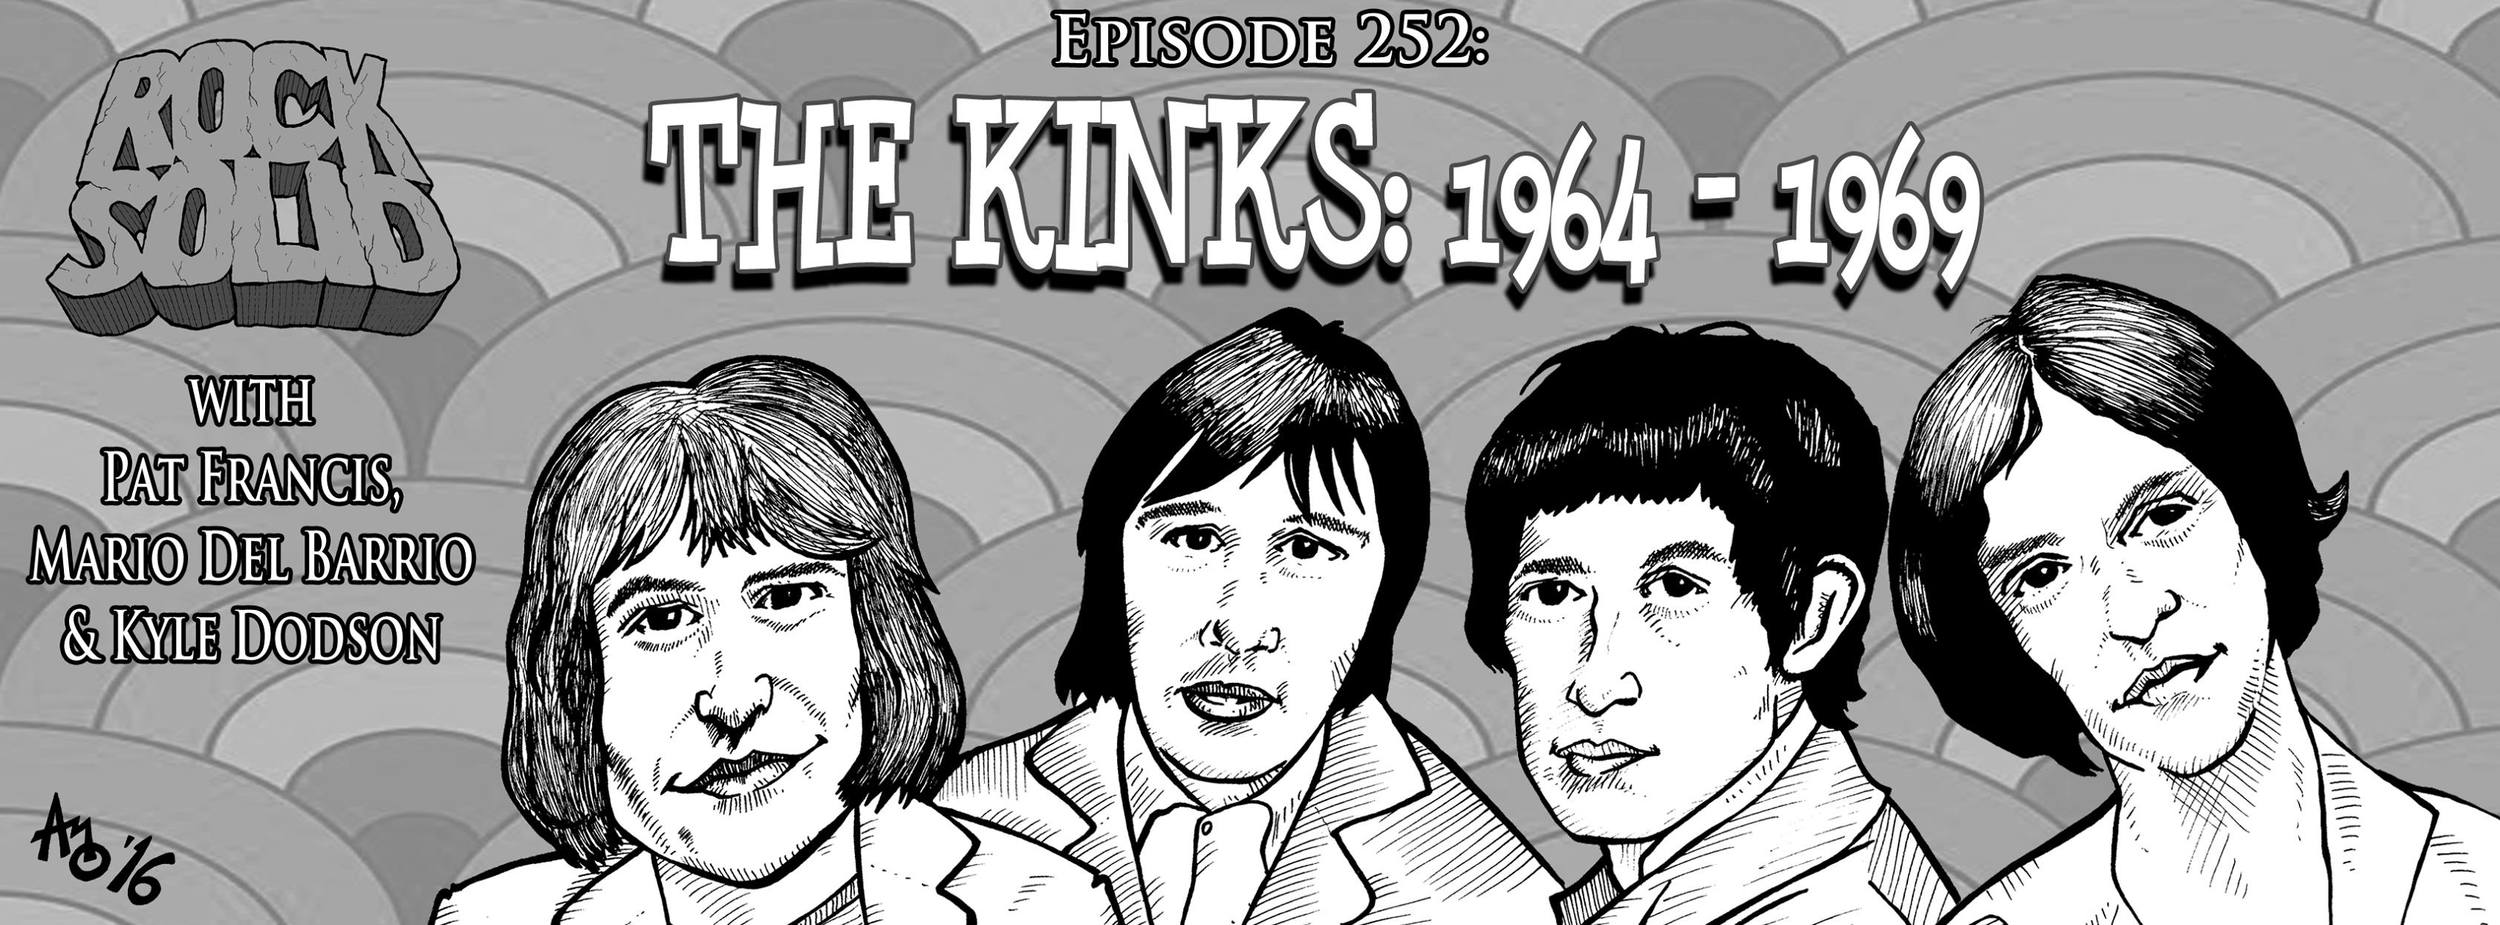 252 - The Kinks: 1964 - 1969